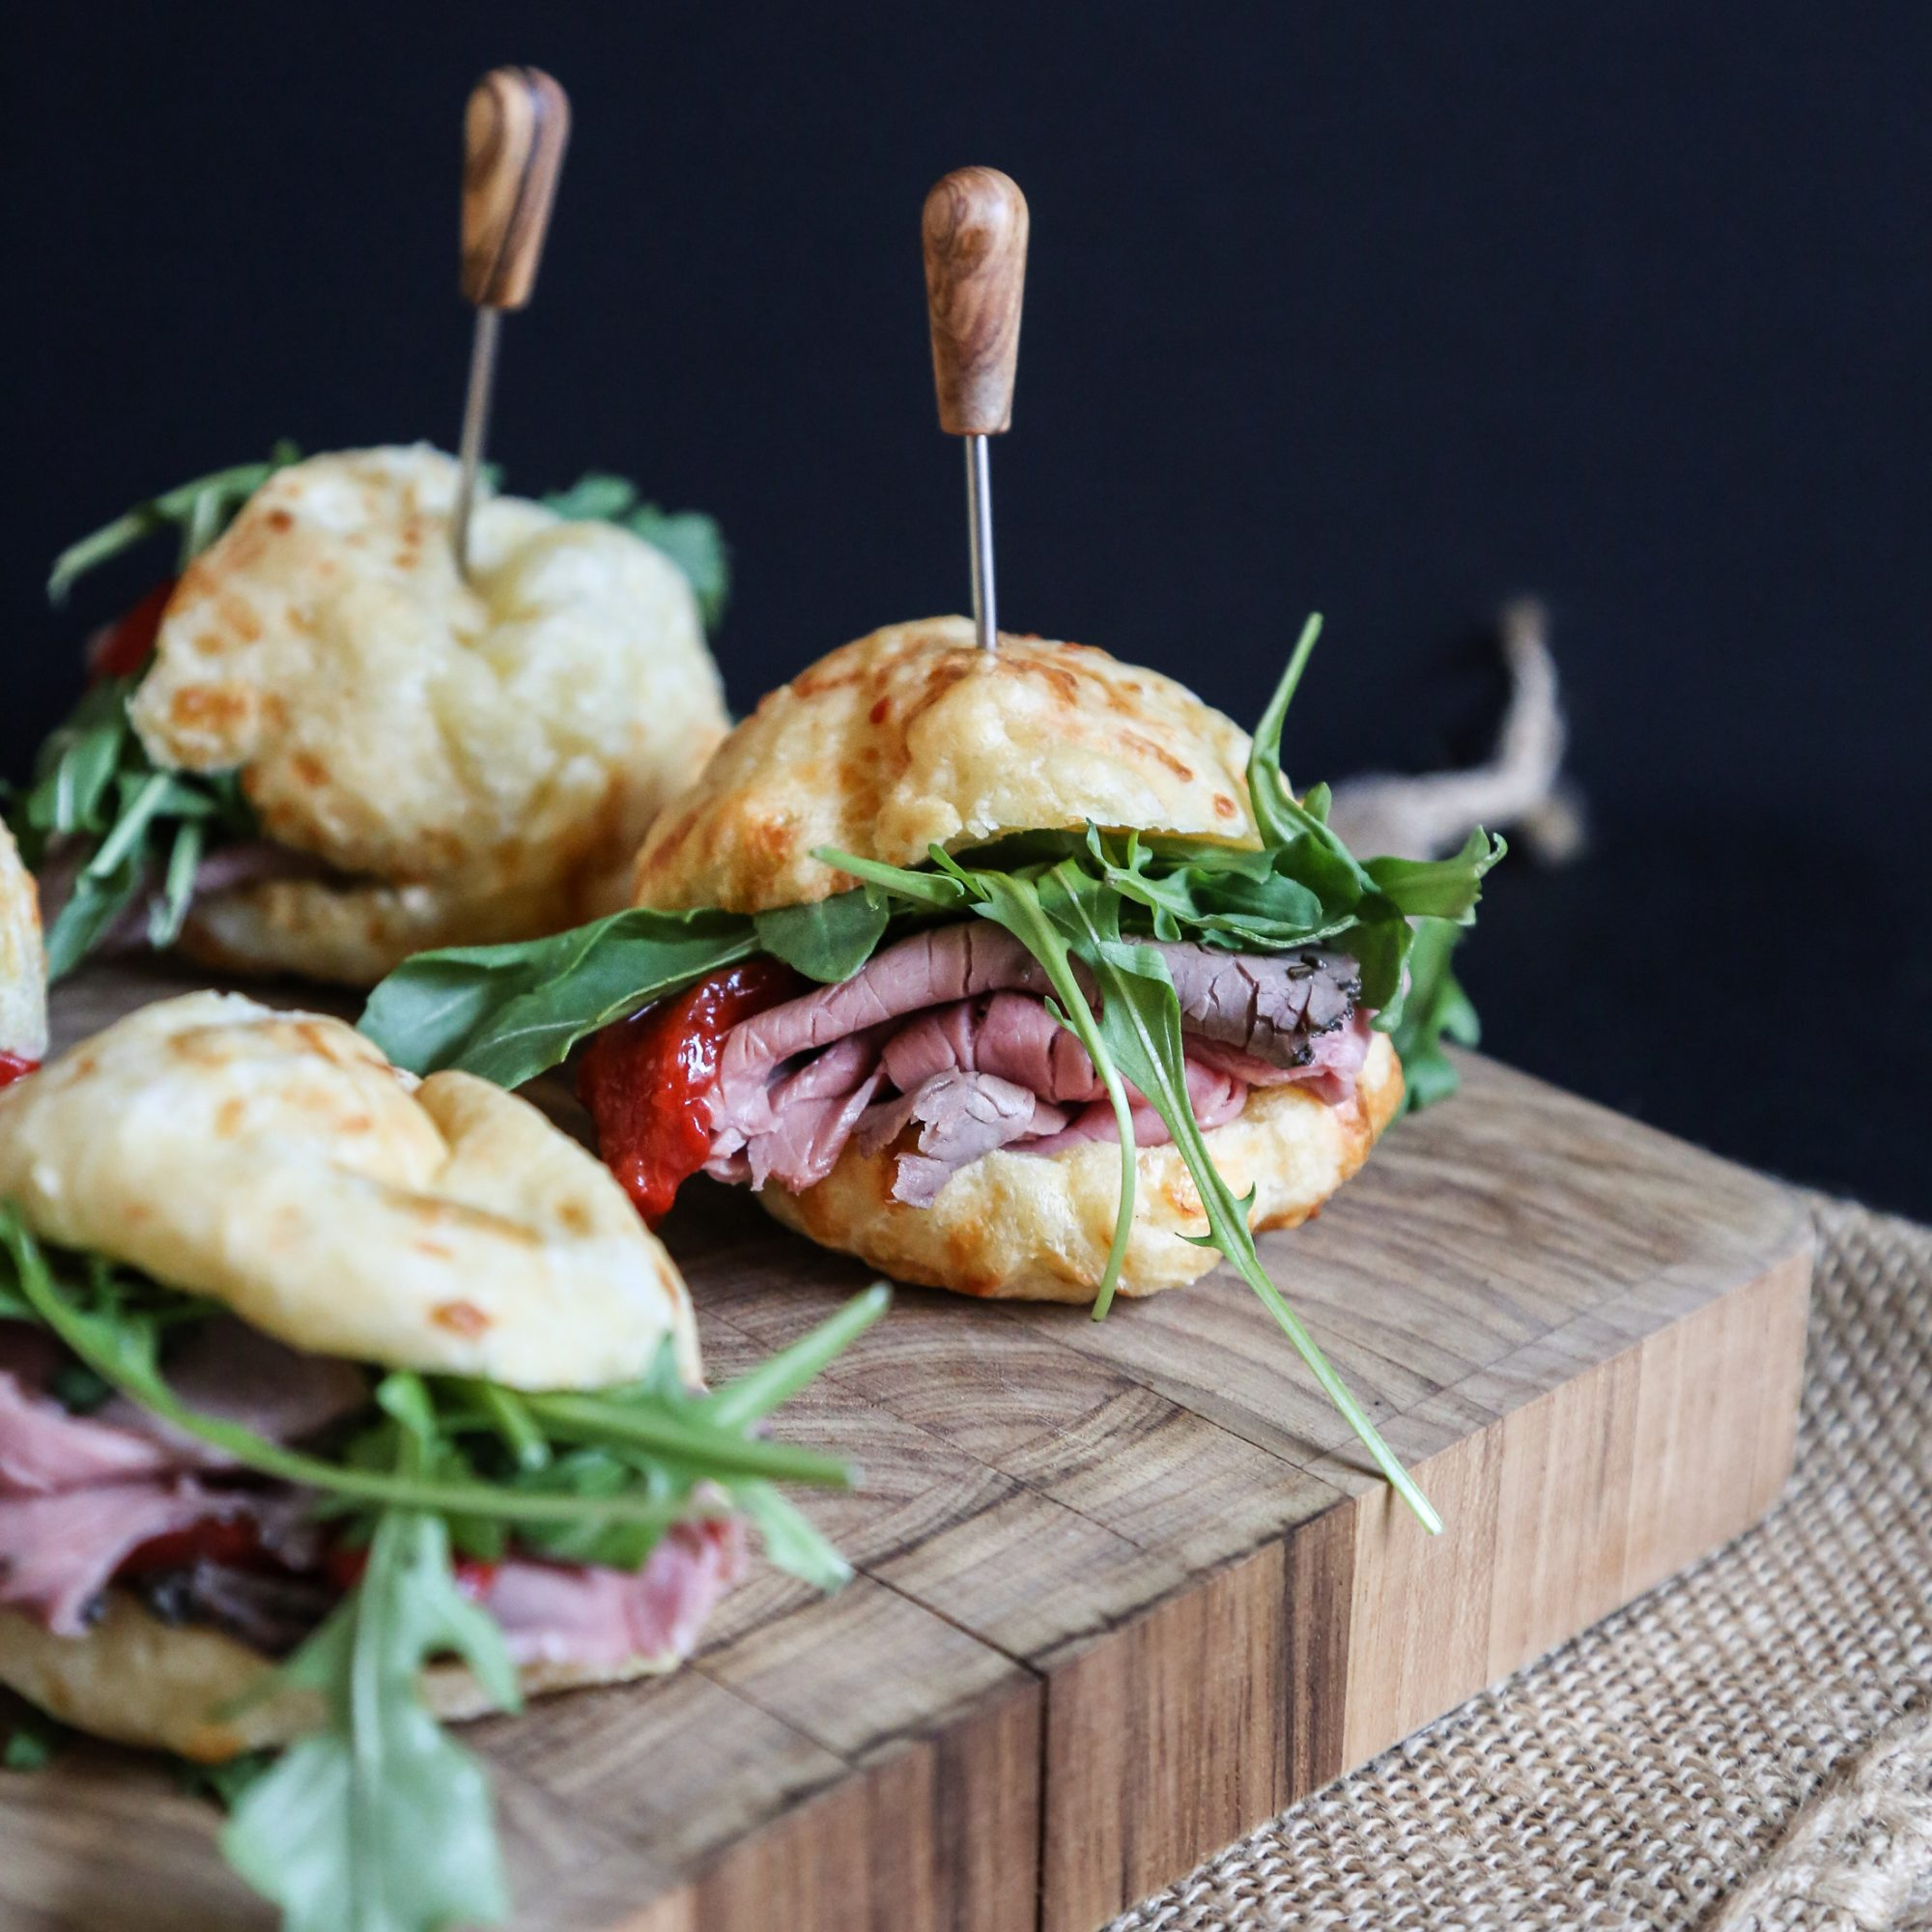 Brazilian Cheese Bread Sliders with Roast Beef, Red Peppers, and Arugula